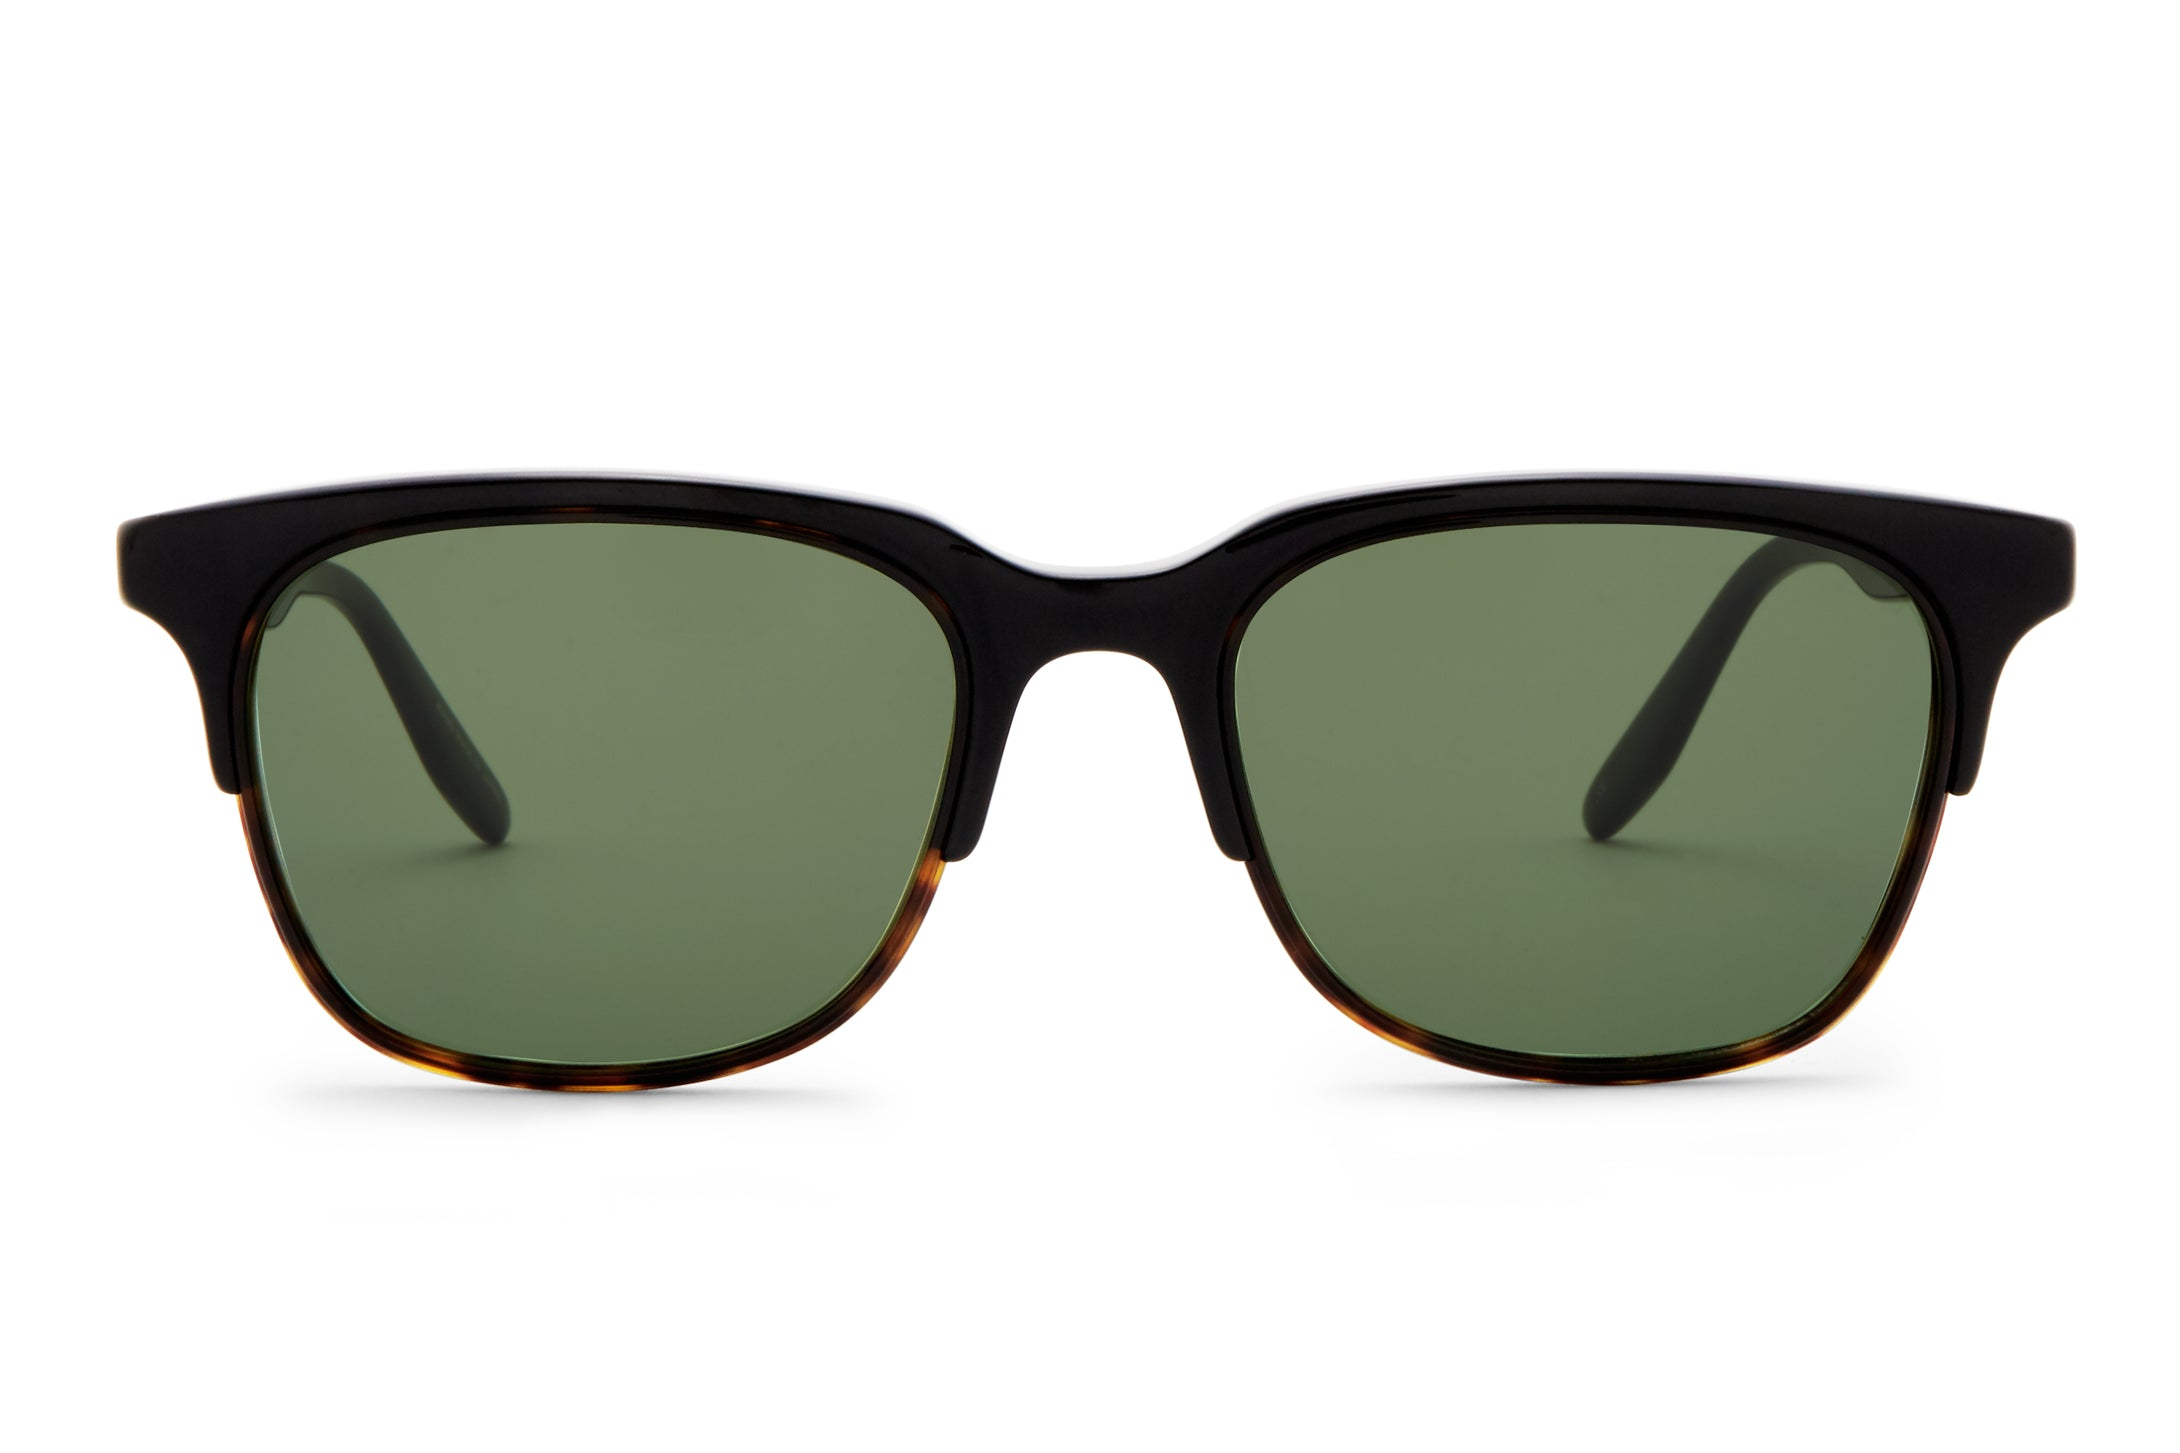 Black / Dark Walnut / Bottle Green (AR)